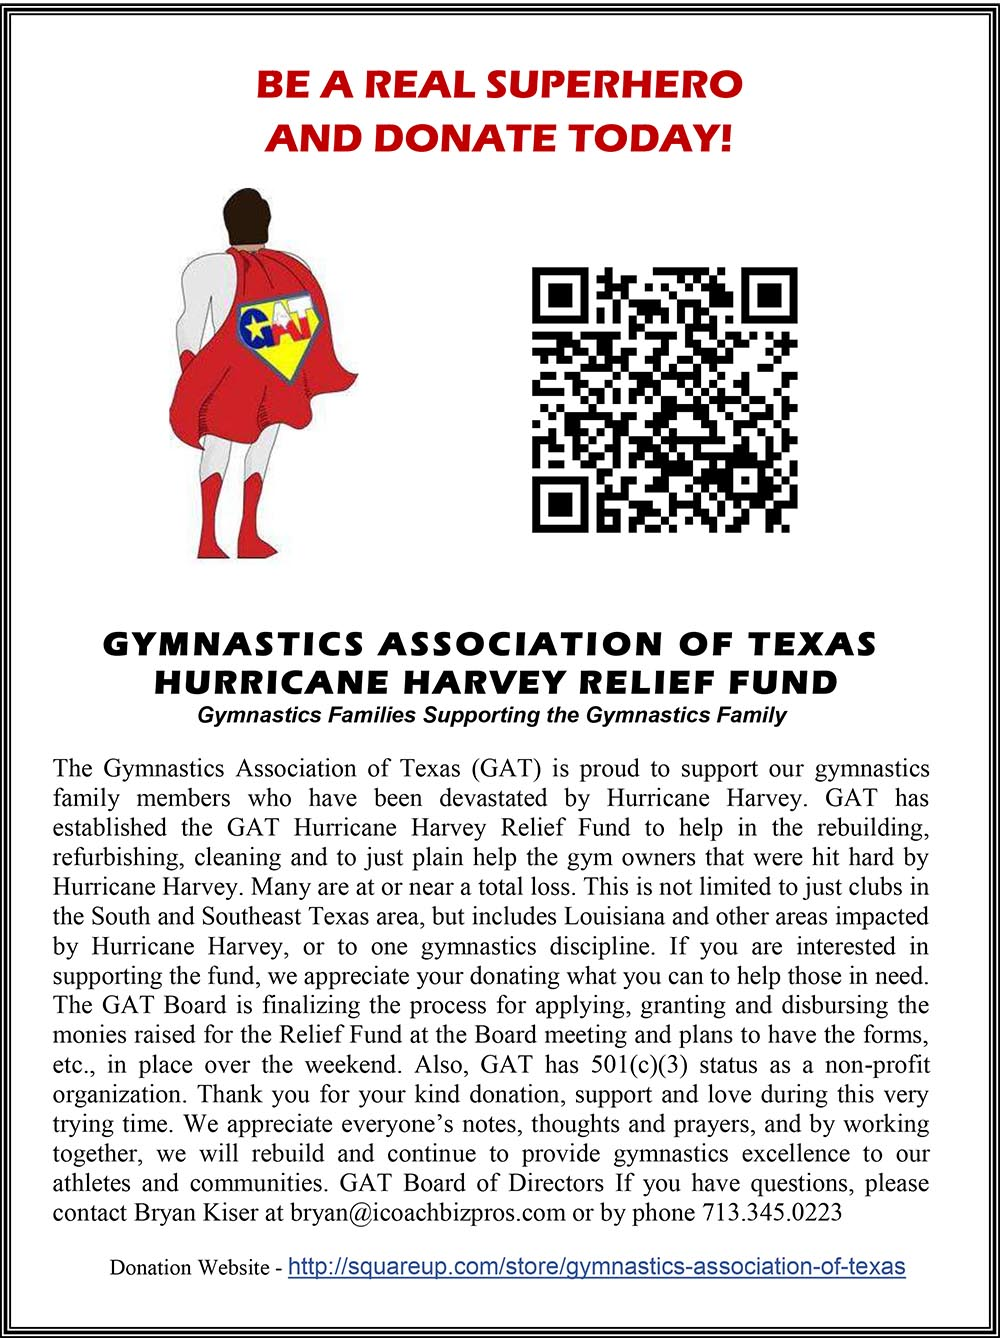 GAT supports the Gulf Coast Gyms damaged by Hurricane Harvey